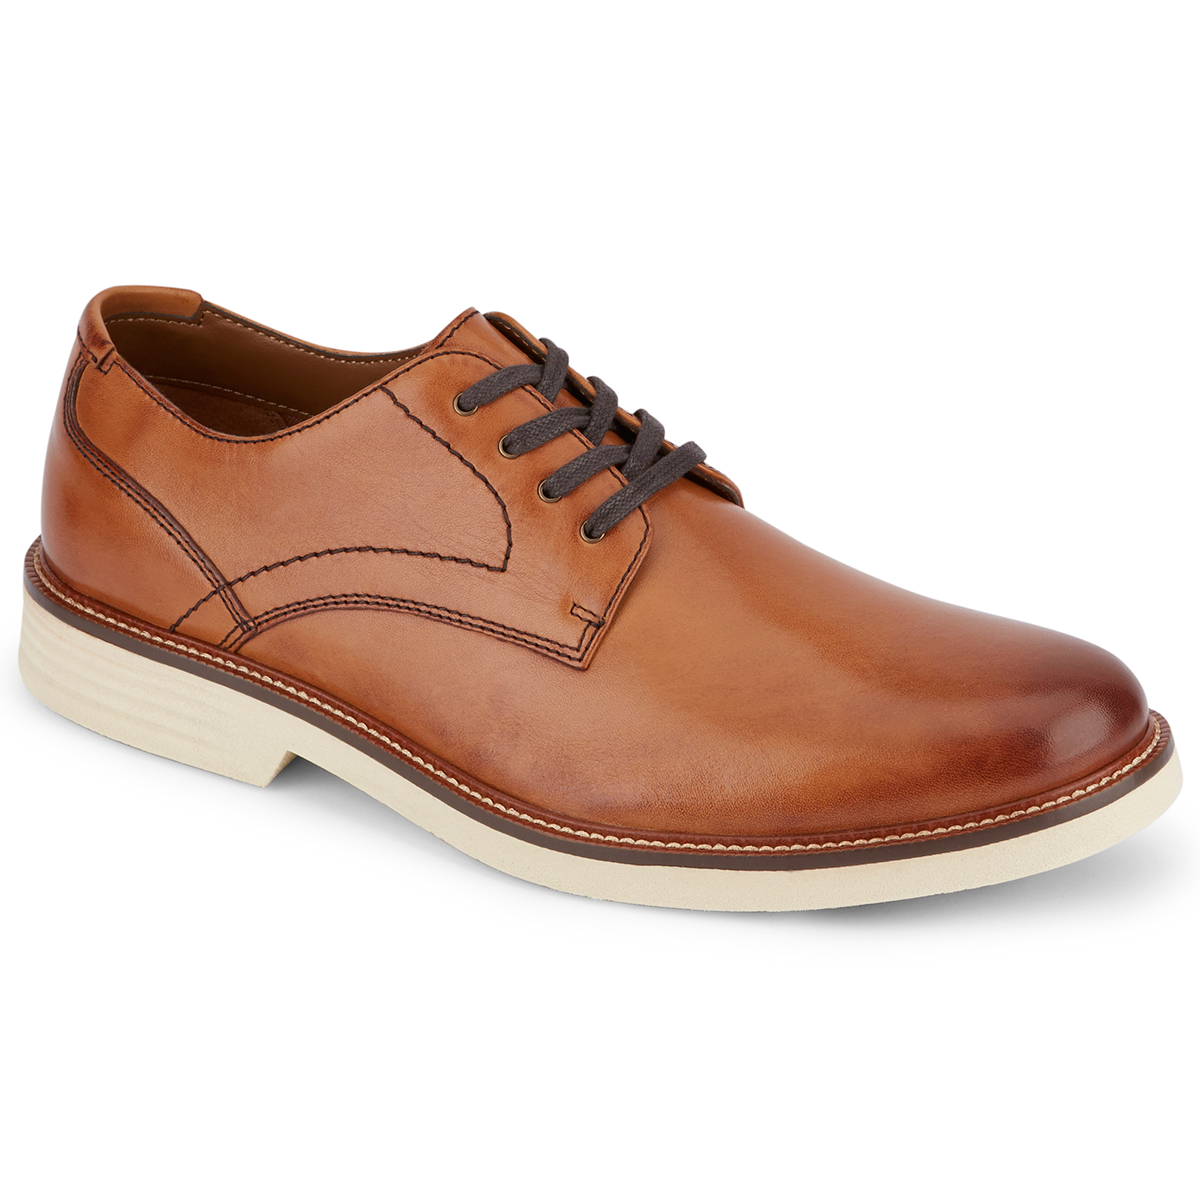 Dockers Men's Parkway Plain Toe Shoes - Brown, 10.5